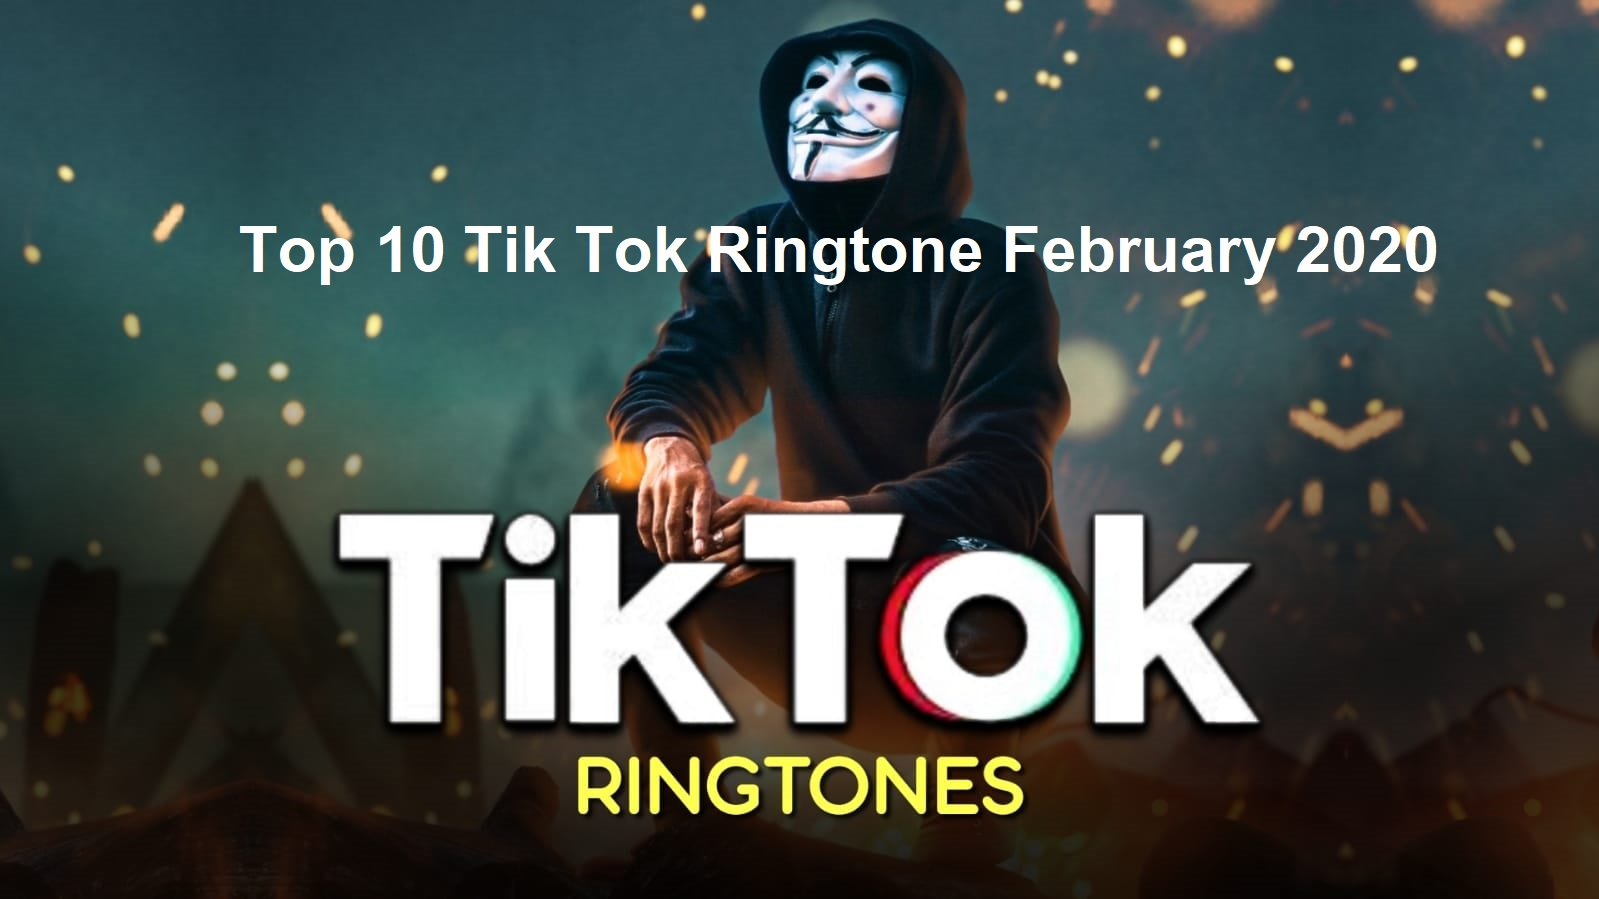 Top 10 Tik Tok Ringtone February 2020